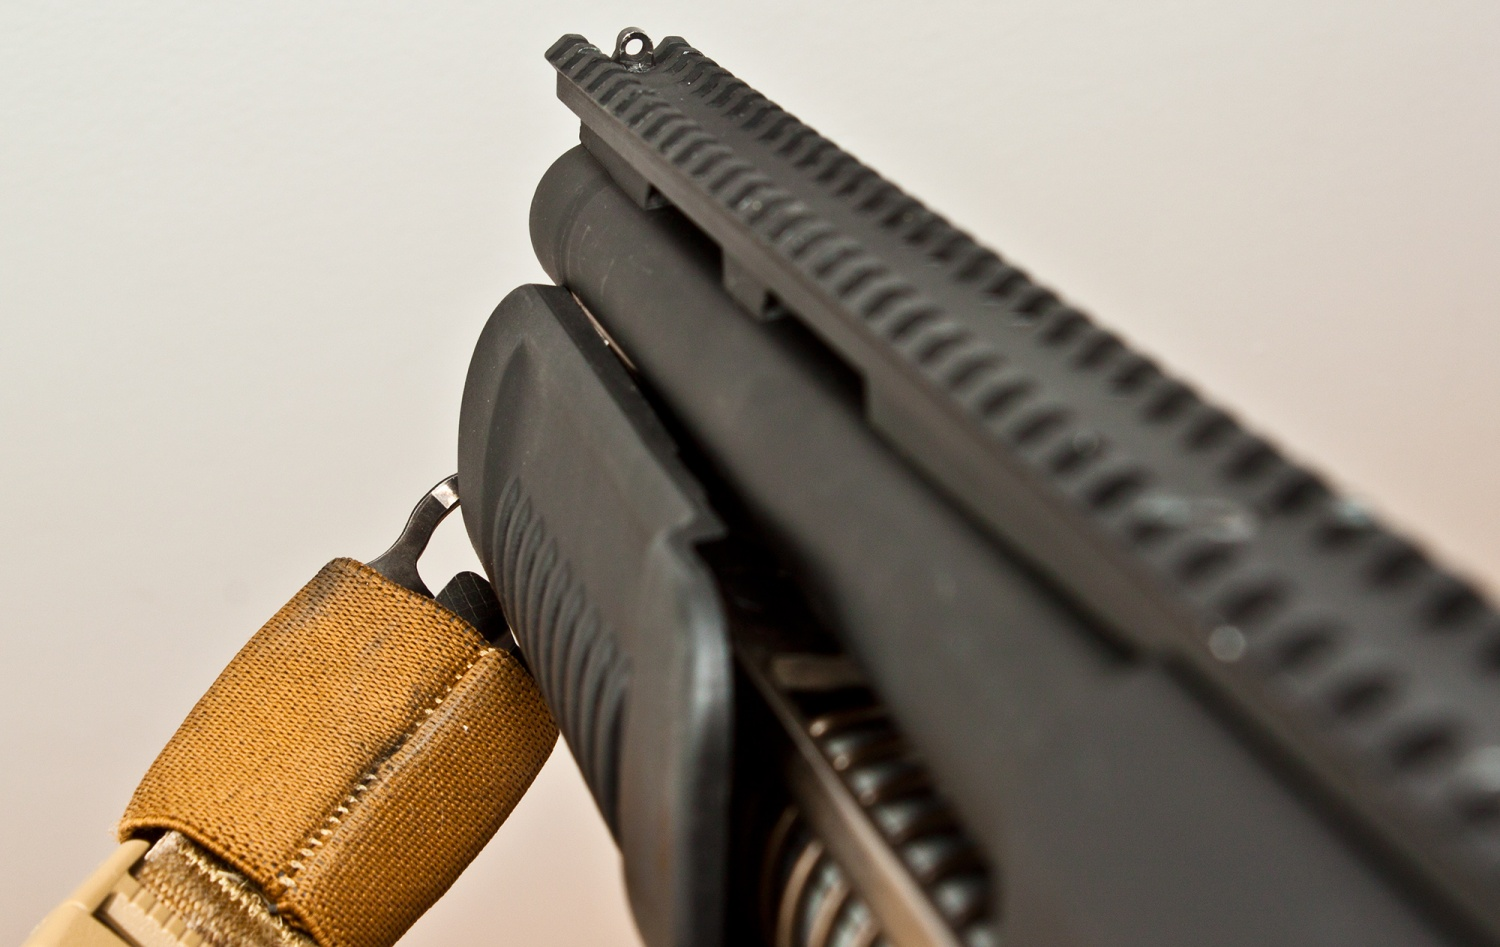 The SAP-6 Front SIght and Sling Mount